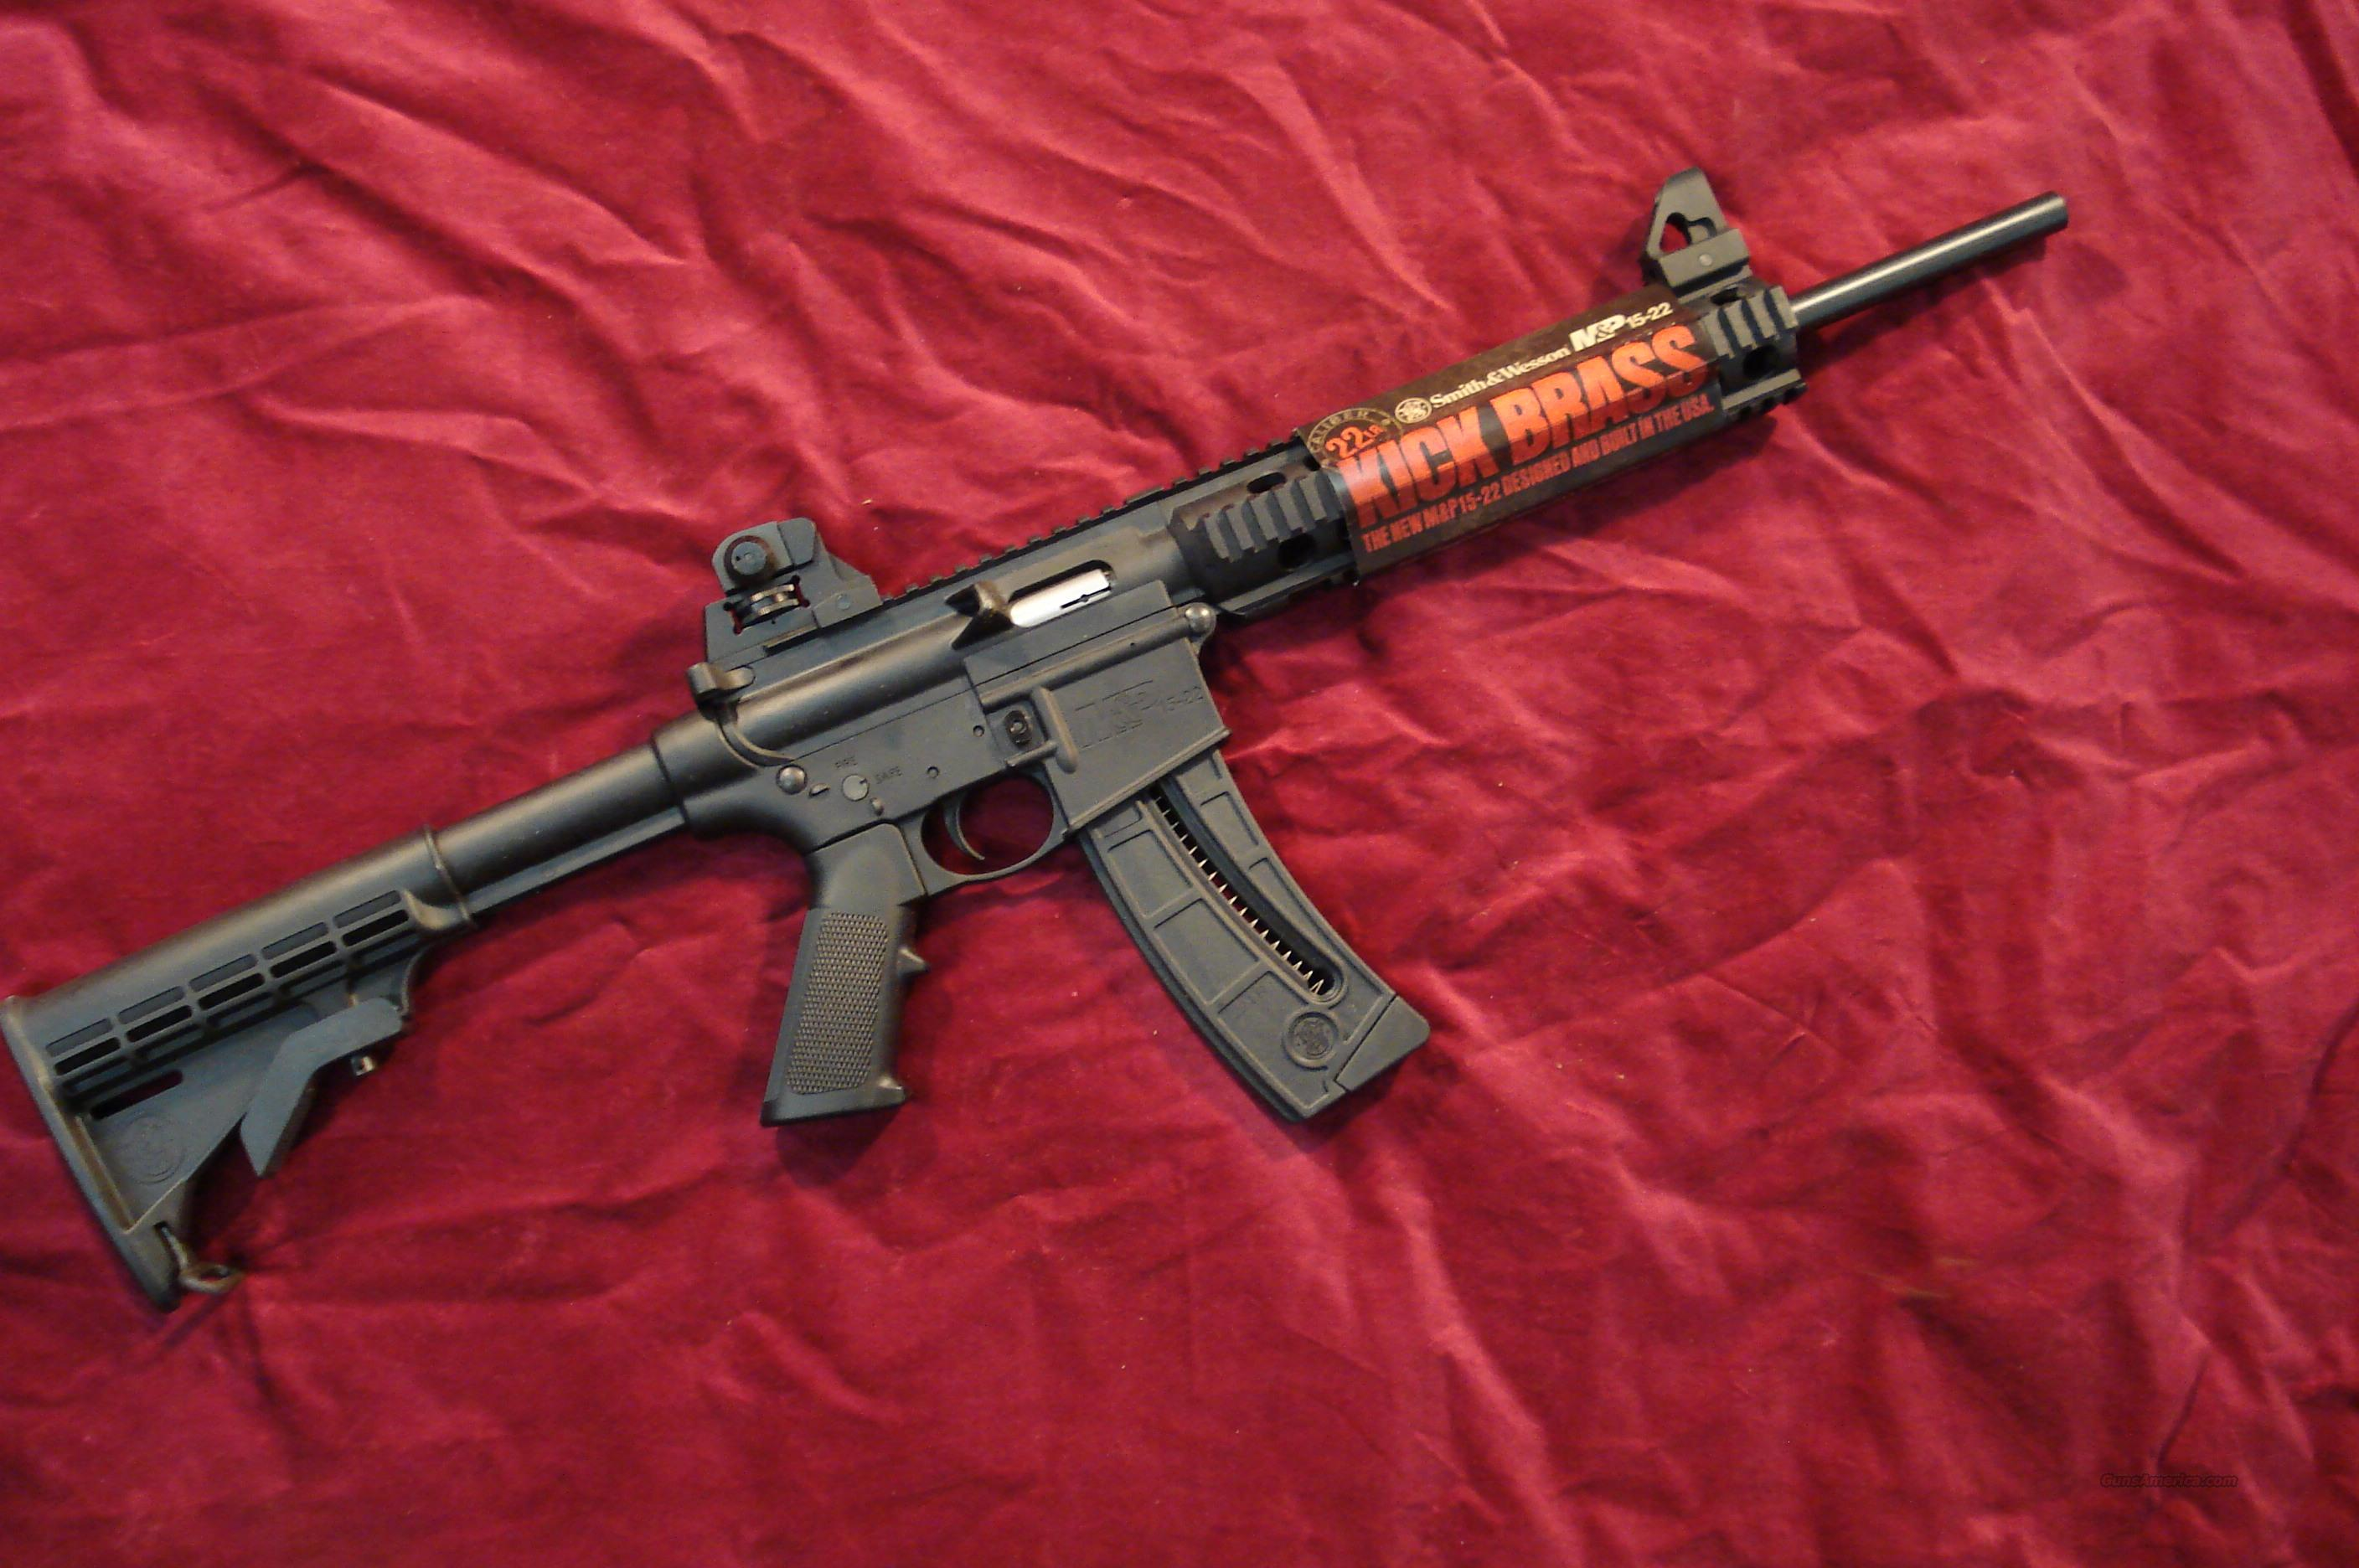 SMITH & WESSON M&P15-22  NEW  Guns > Rifles > Smith & Wesson Rifles > M&P